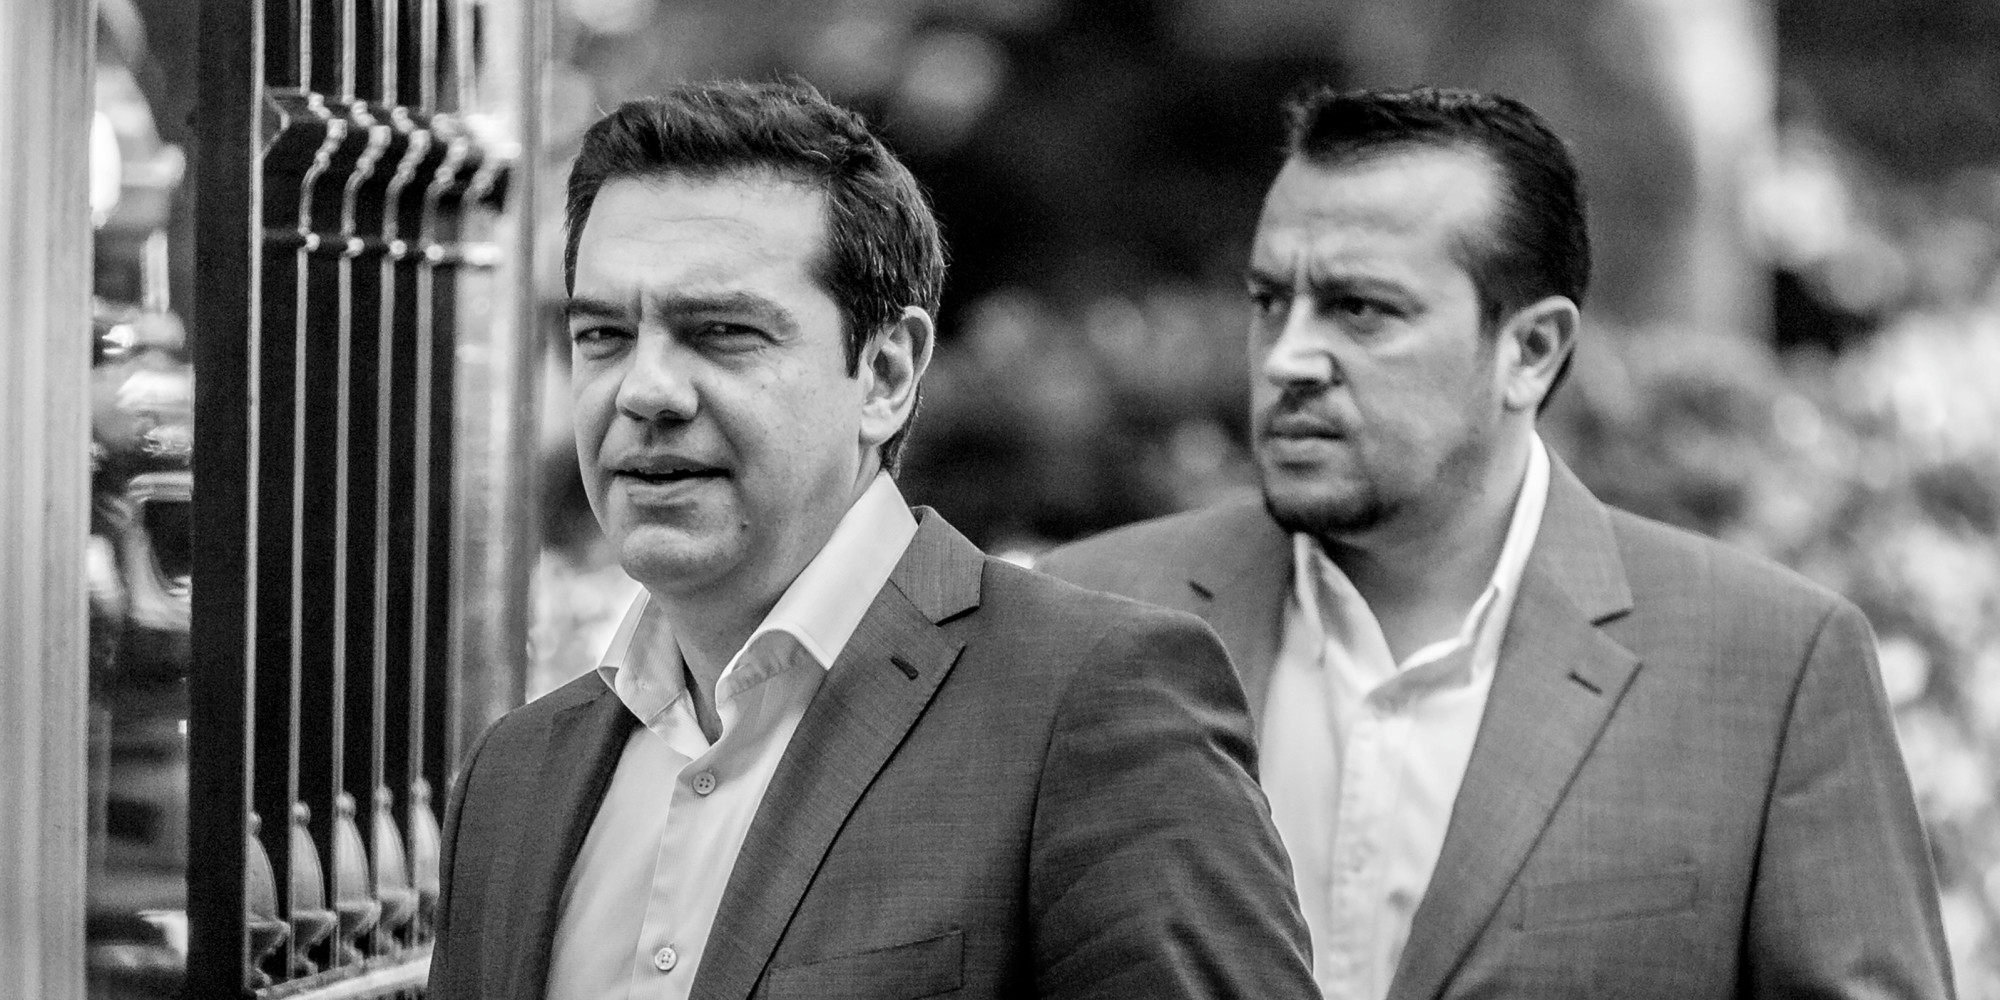 Alexis Tsipras, Greece's Prime Minister, left, and Nikos Pappas, Greece's Minister of State, right, outside the Greek Presidential Palace after meeting with party leaders in Athens, Greece, on July 6, 2015, before the critical EU Summit in Brussels.